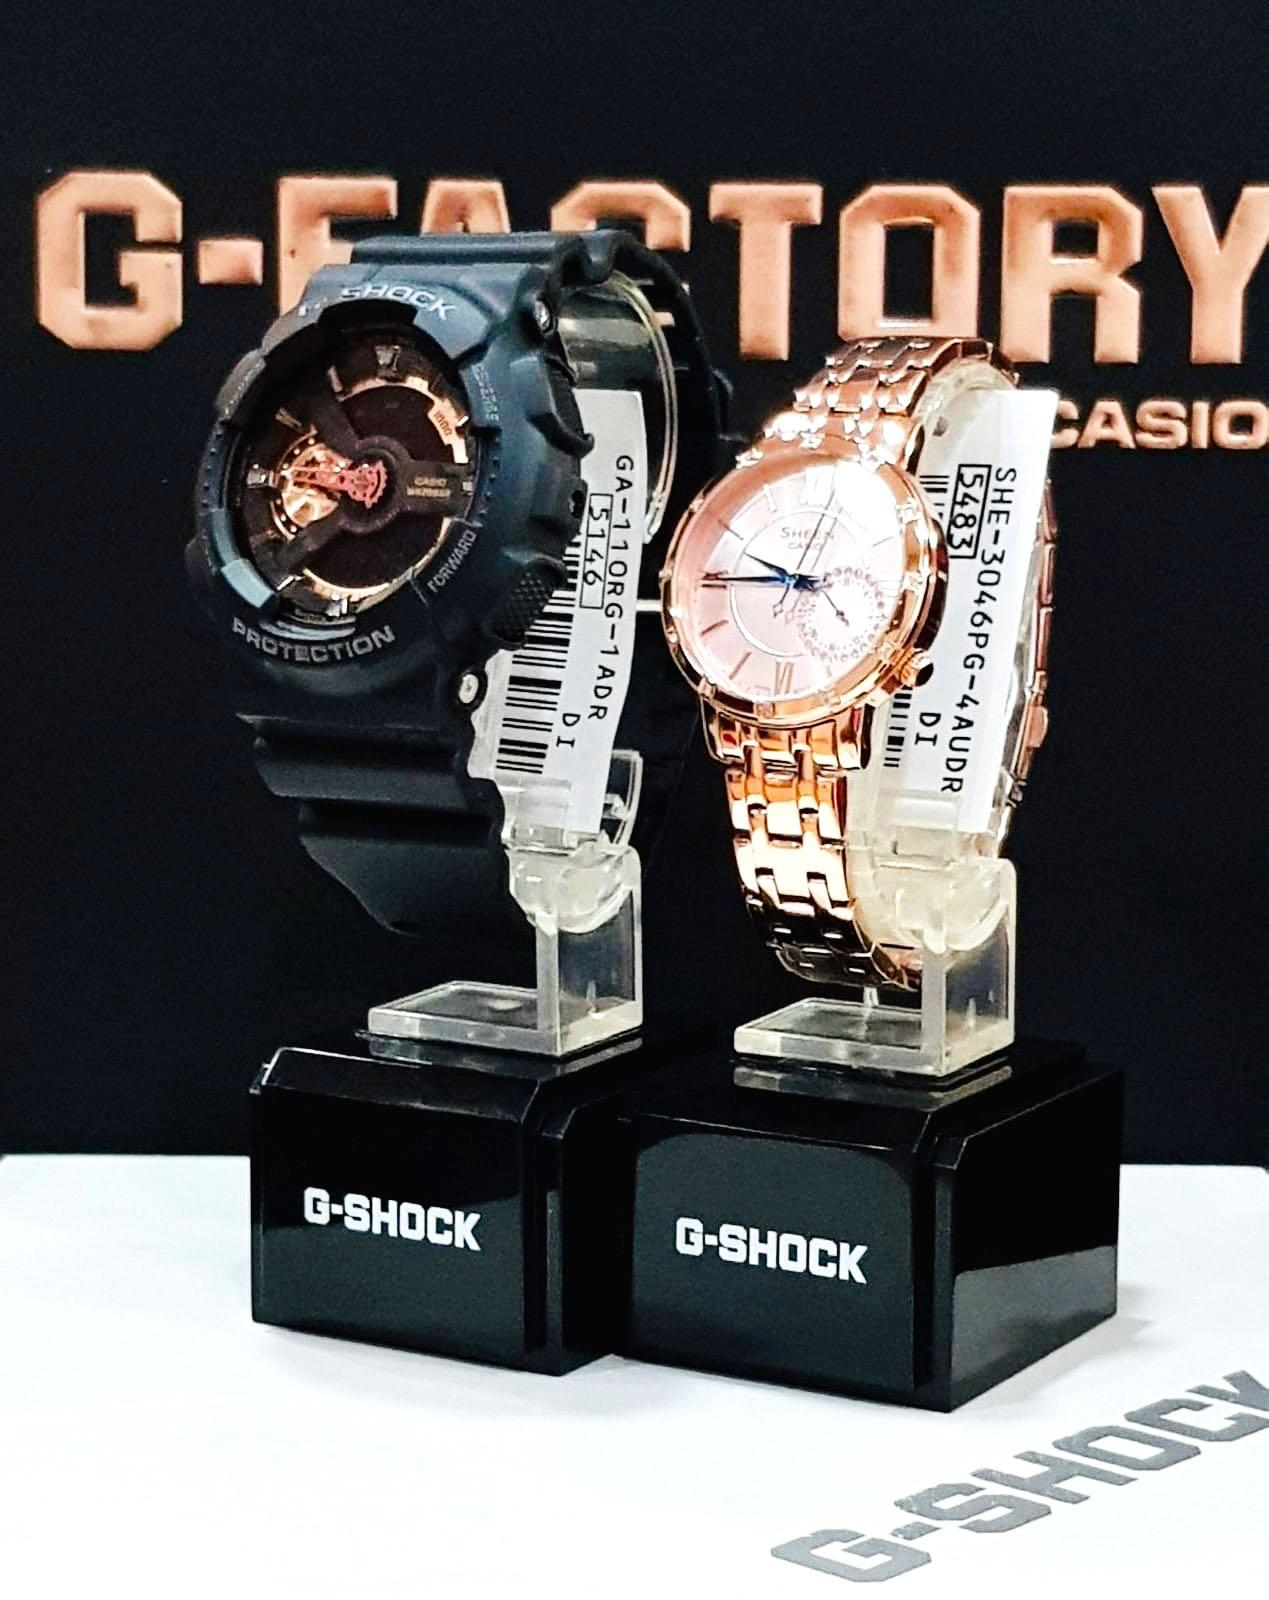 NEW🌟COUPLE💝SET : SHEEN🌟GSHOCK UNISEX DIVER SPORTS WATCH  : 100% ORIGINAL AUTHENTIC CASIO BABY-G-SHOCK ( BABYG + GSHOCK ) Company : GA-110RG-1A + SHE-4056PG-4A (ROSE-GOLD)